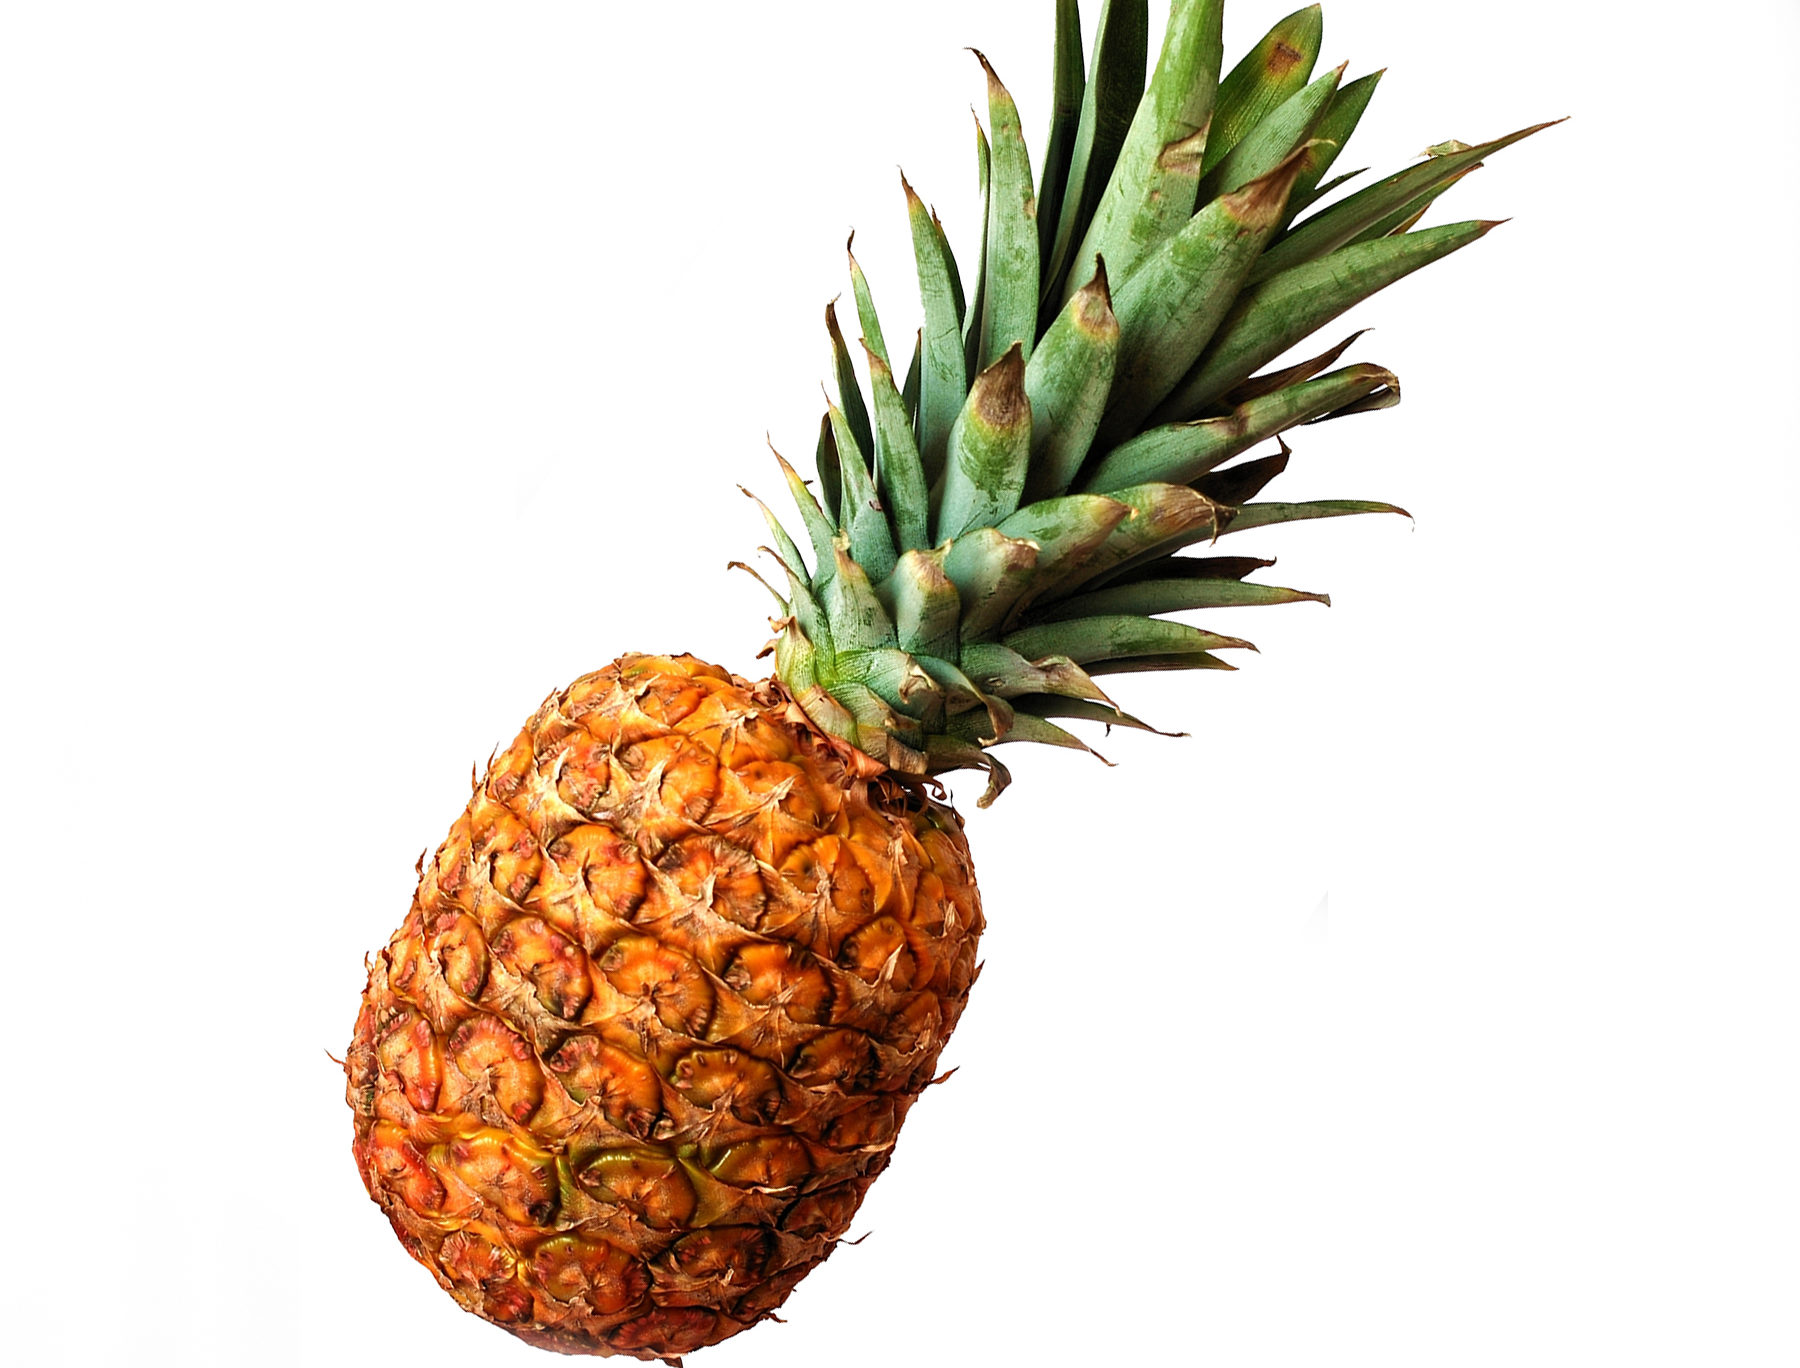 Fresh whole golden pineapple